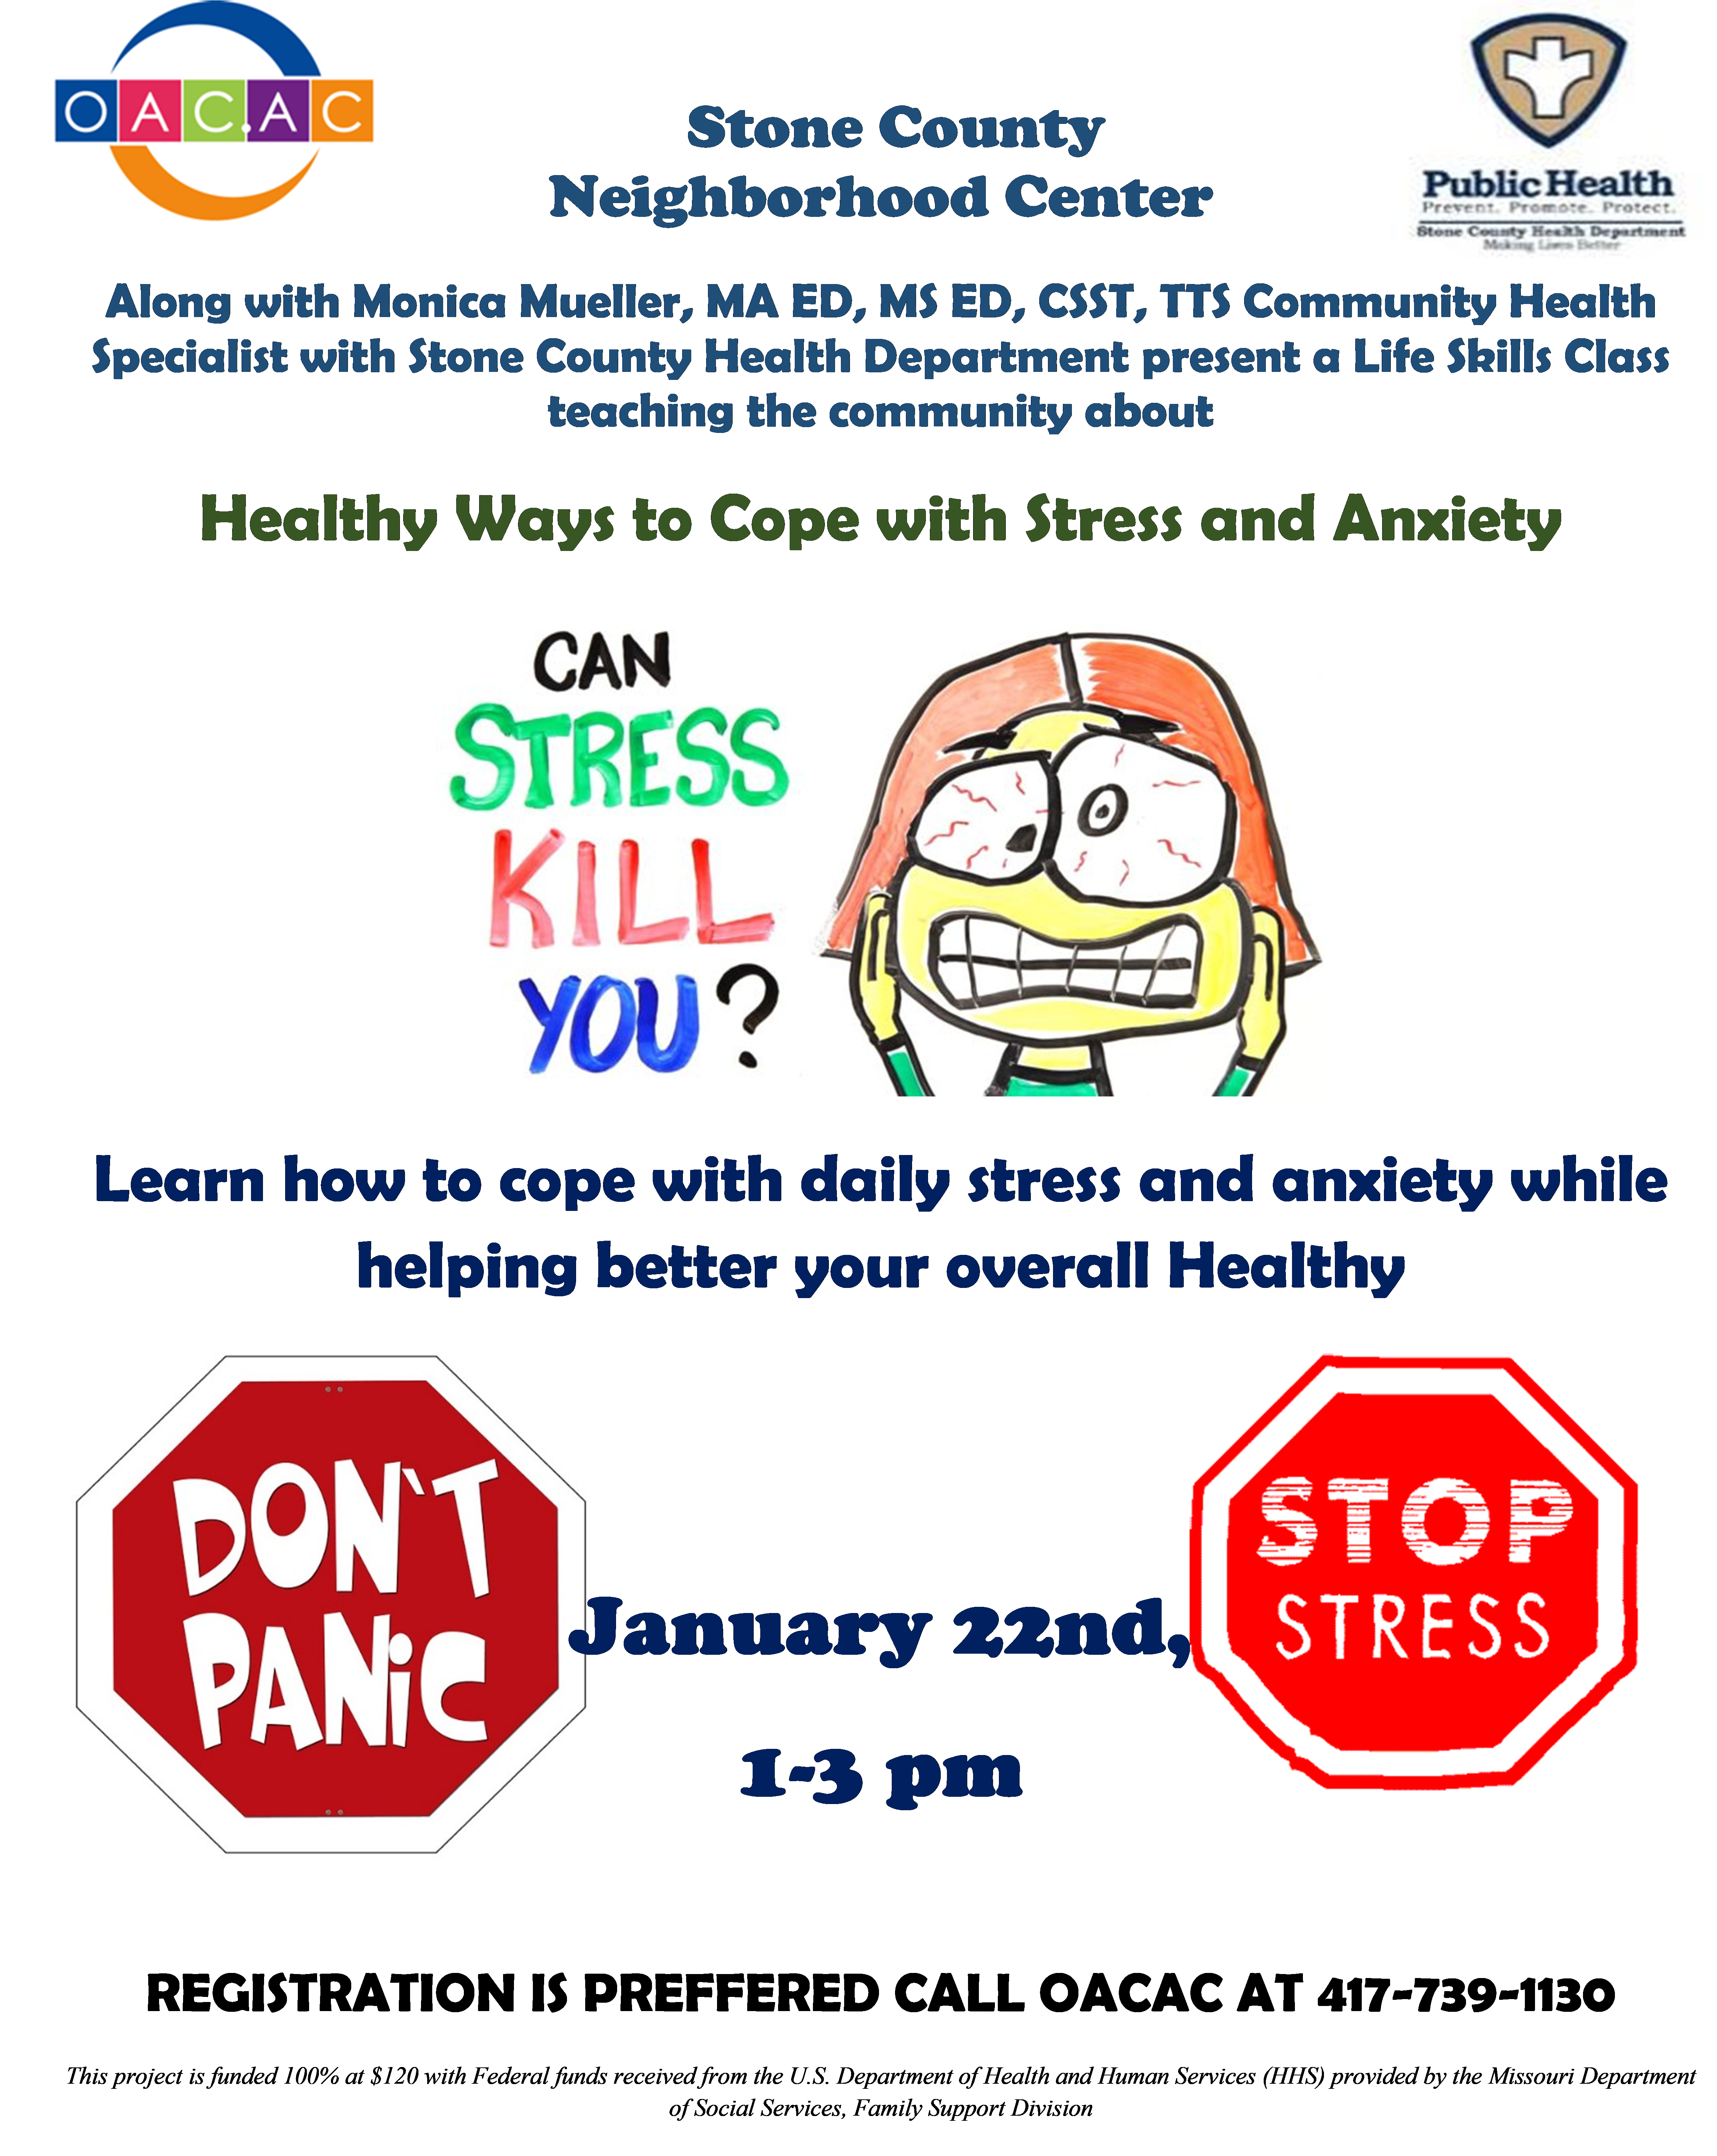 Teachers Report Stressed Anxious >> Healthy Ways To Cope With Stress And Anxiety Stone County Health